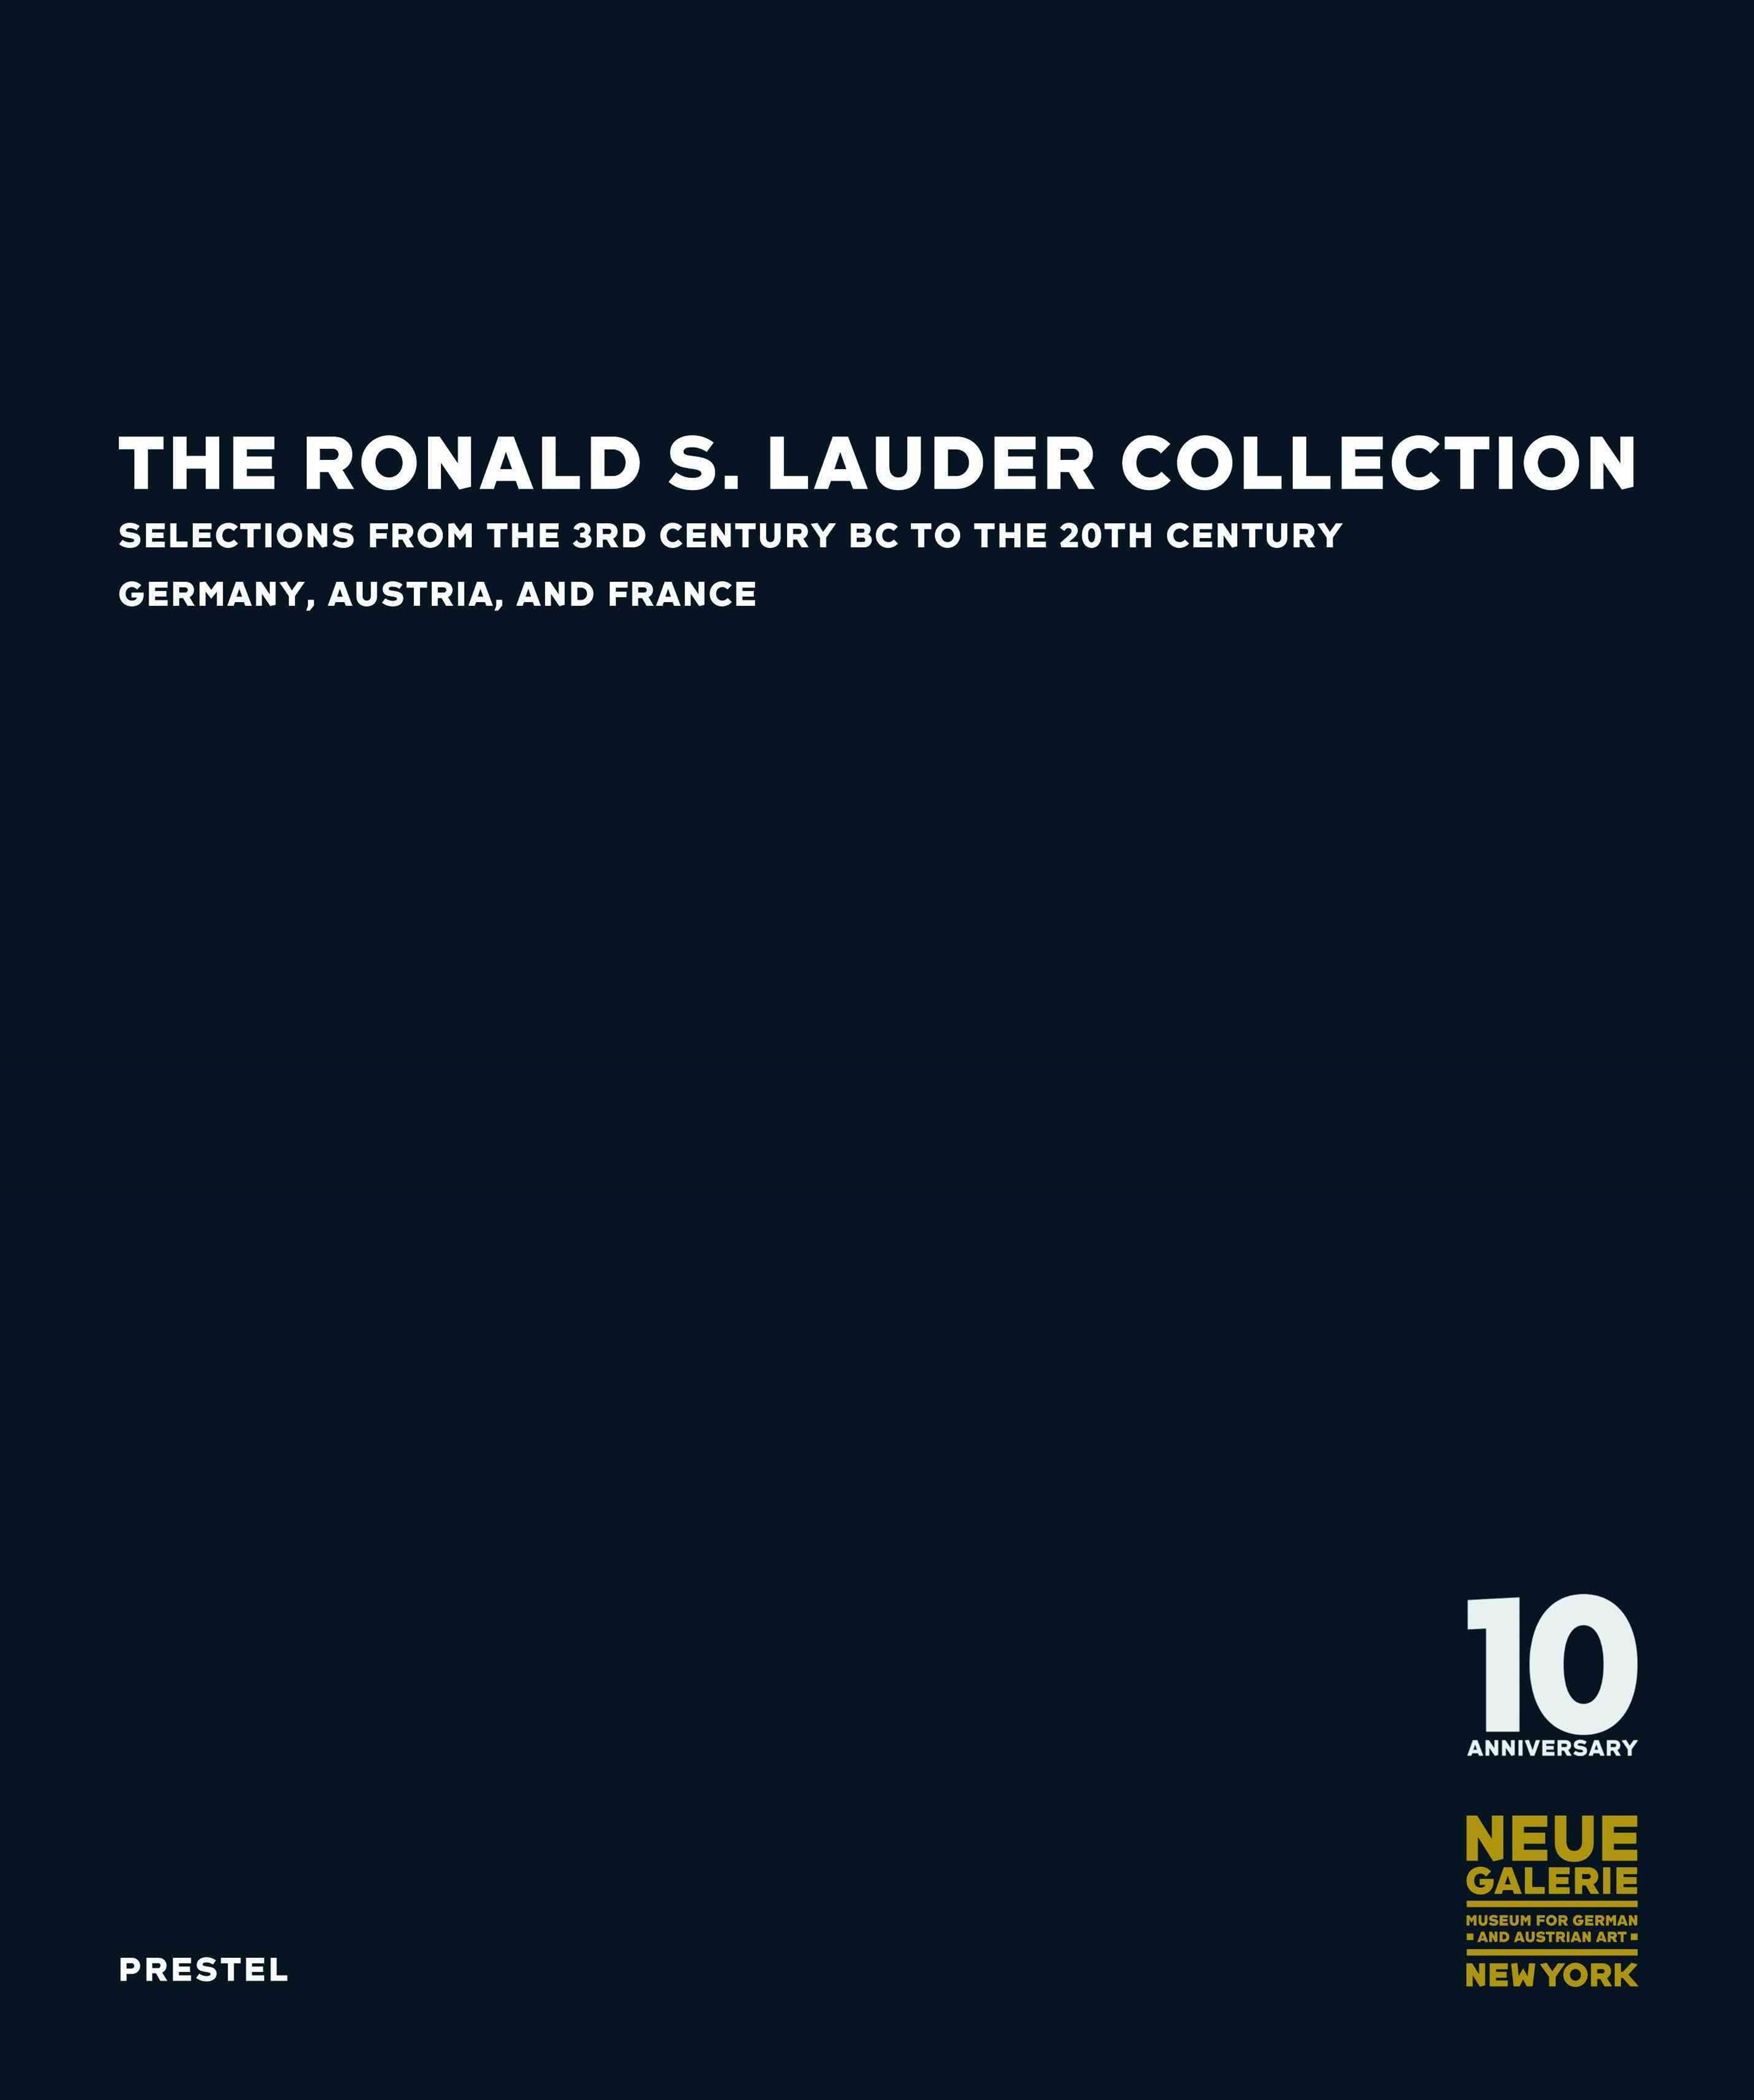 Ronald S. Lauder Collection: Selections from the 3rd Century BC to the 20th Century Germany, Austria, and France